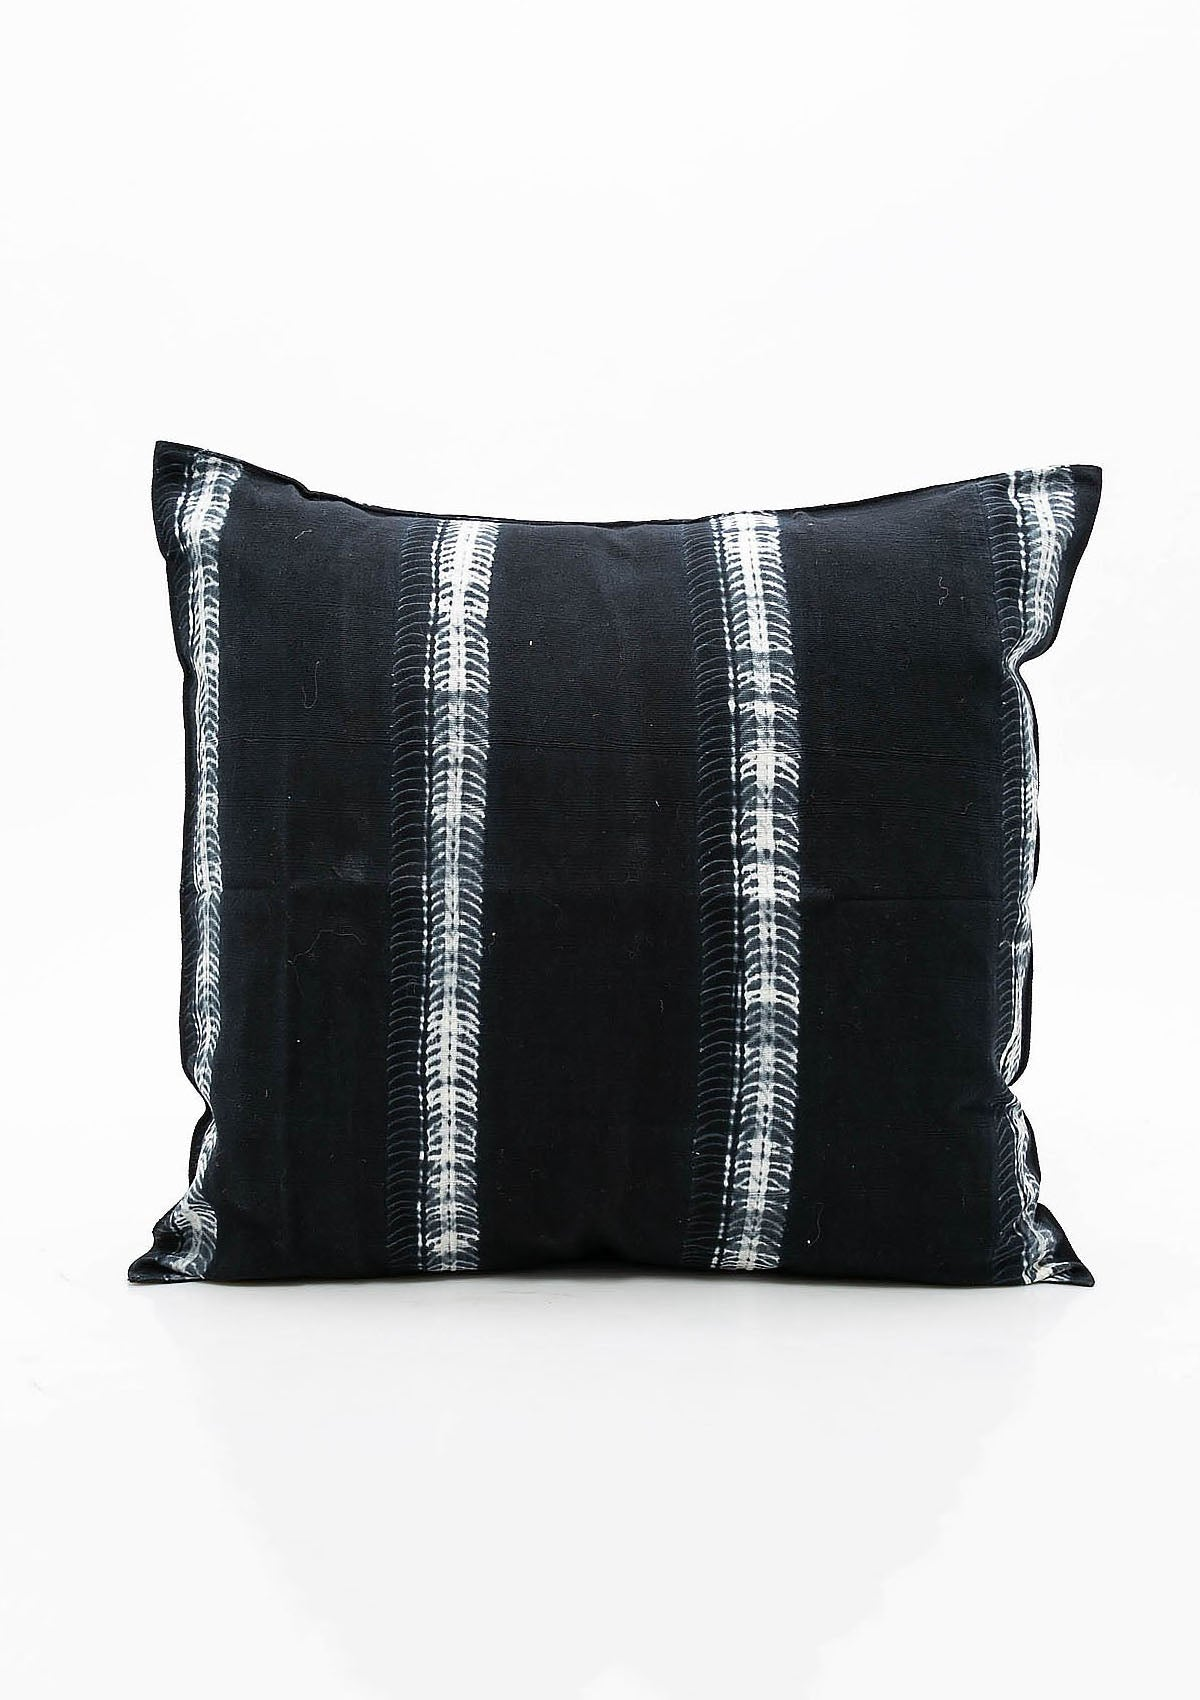 Cushion, Navy Batik, 20